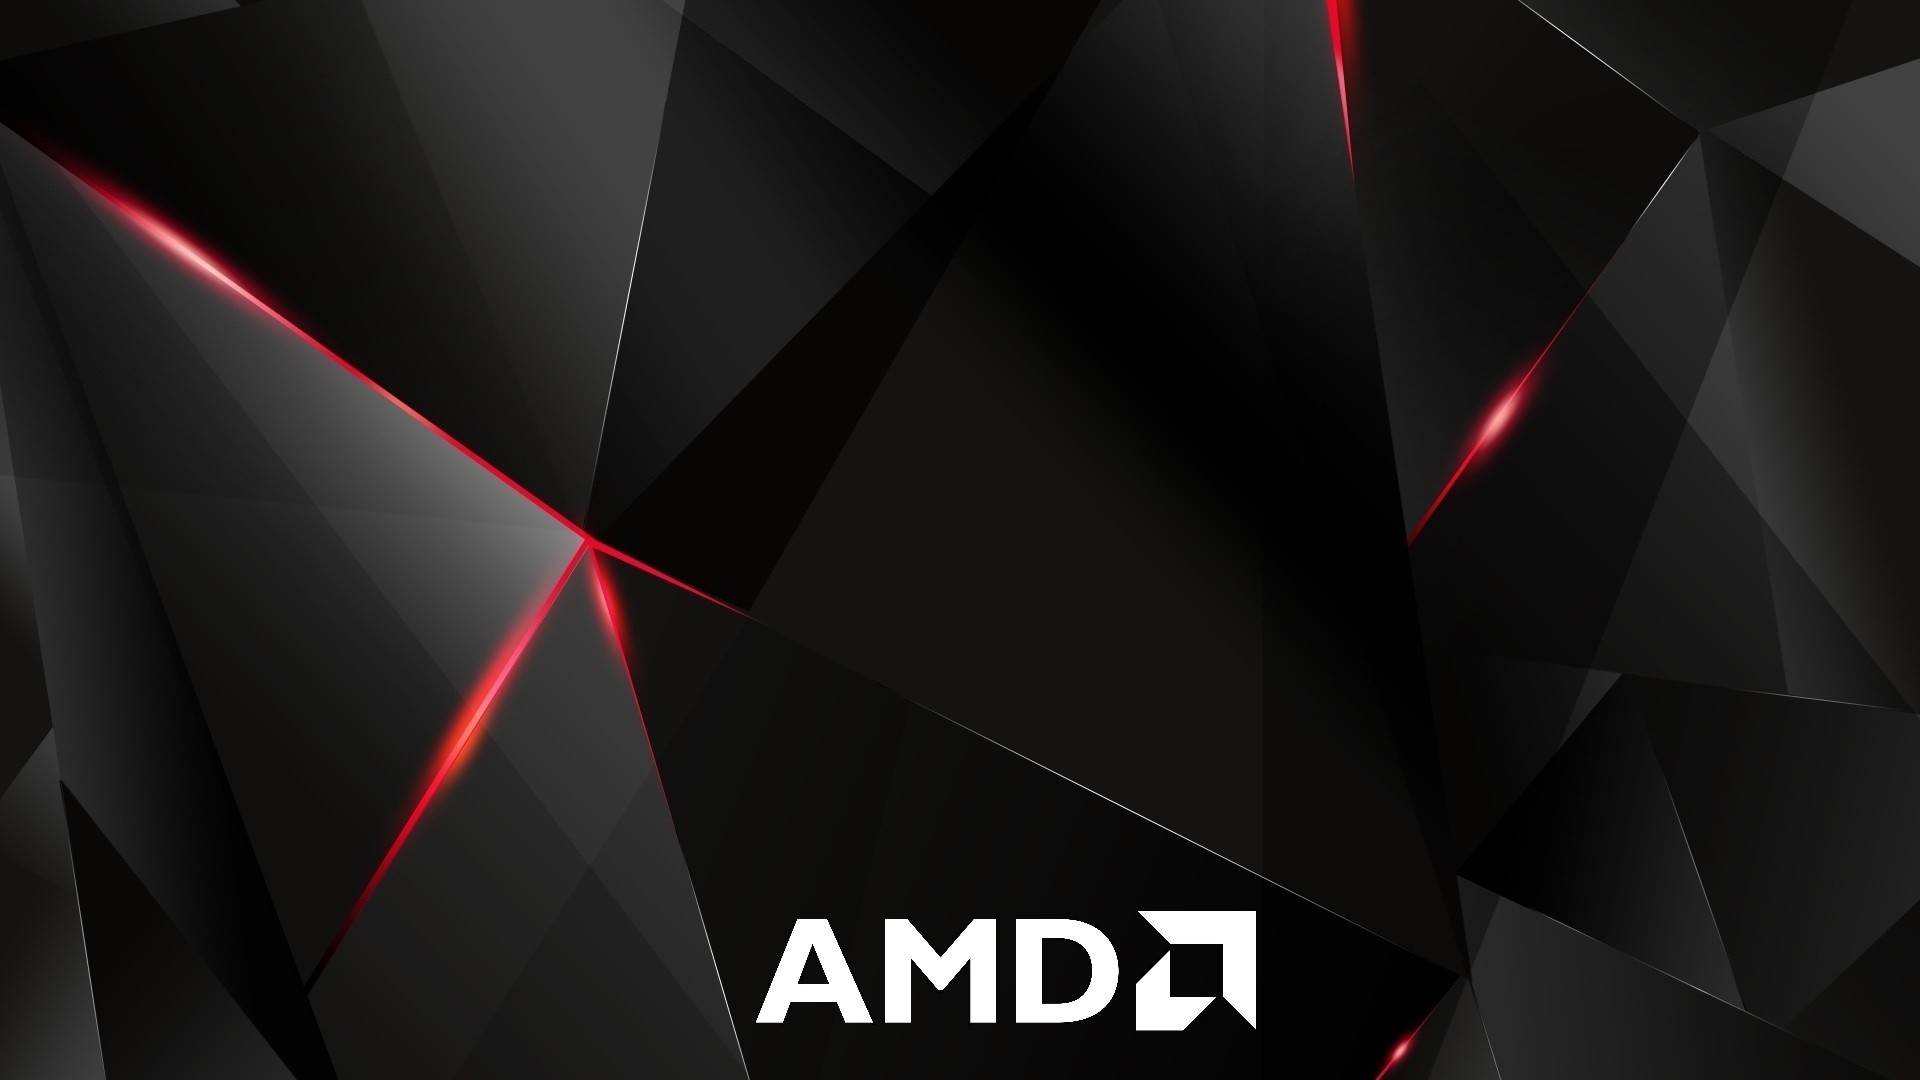 Res: 1920x1080, AMD Wallpapers